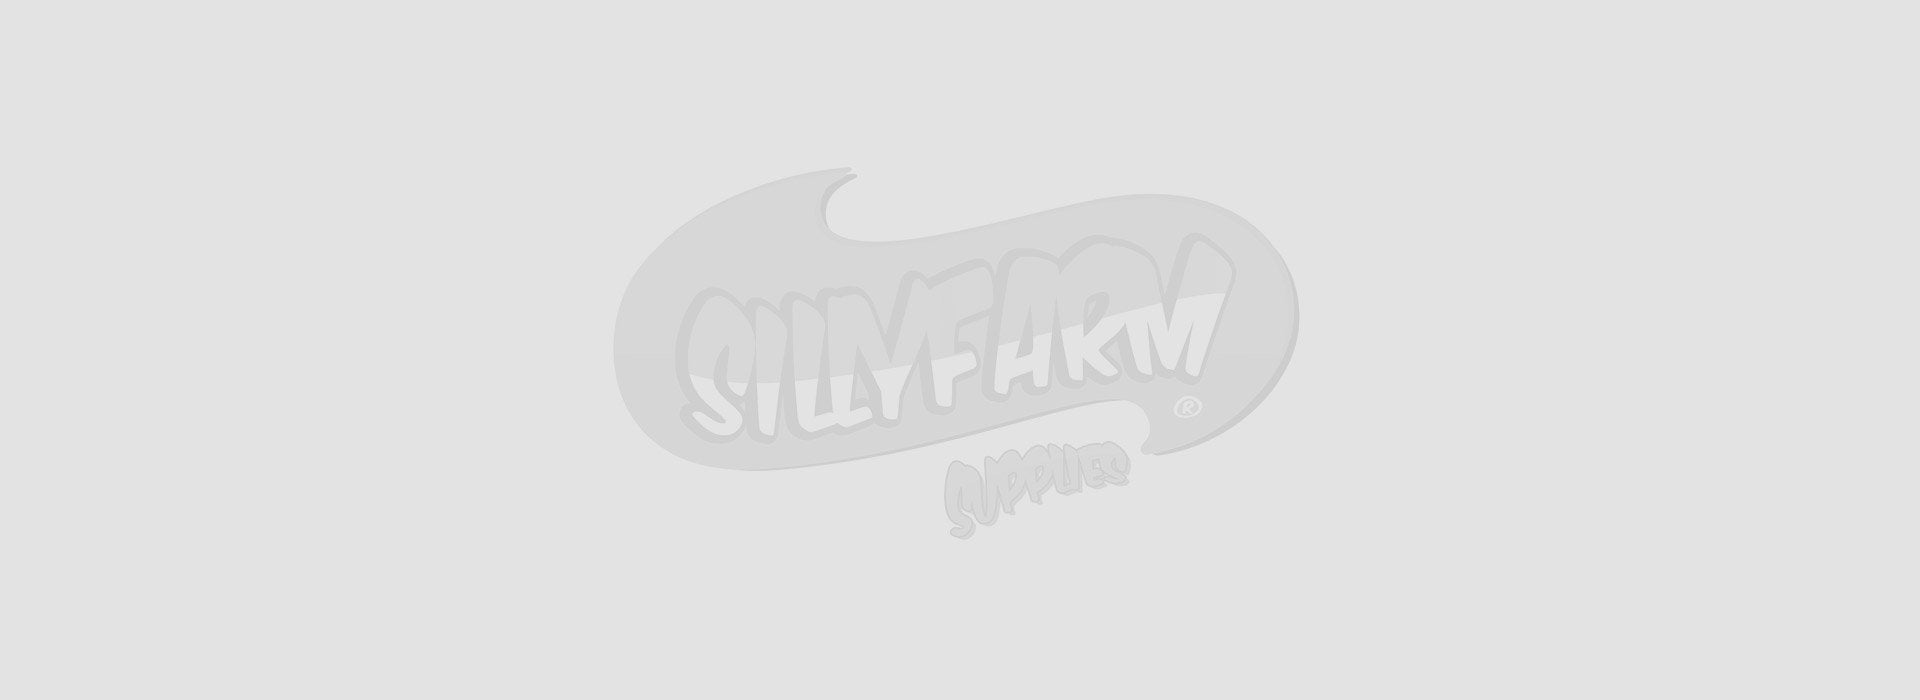 European Body Art | Silly Farm Supplies